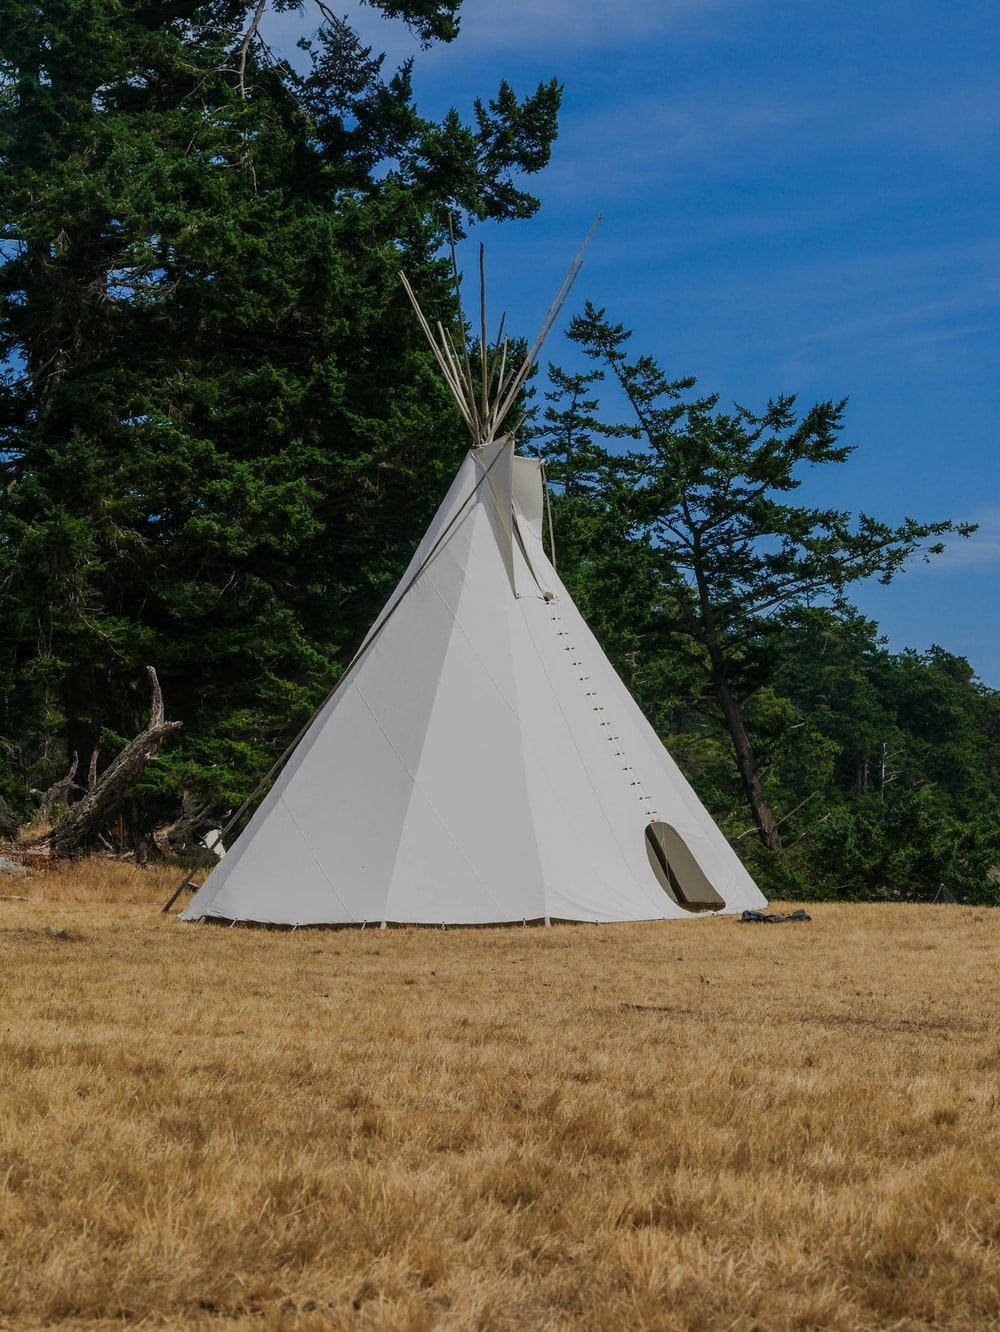 white tent on brown grass field during daytime